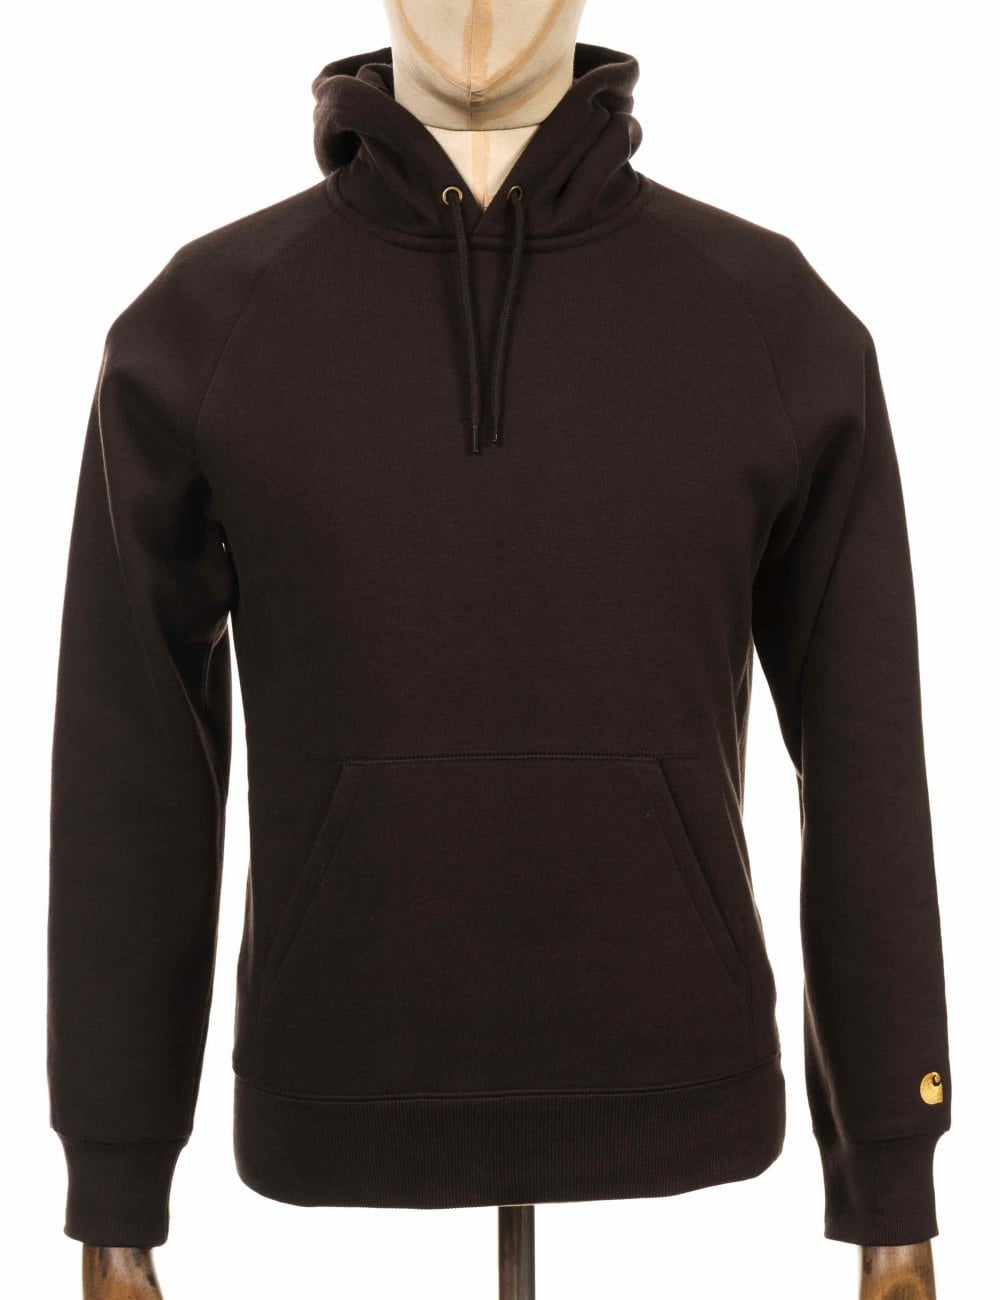 b65325bf Carhartt WIP Hooded Chase Sweatshirt - Tobacco - Clothing from Fat ...